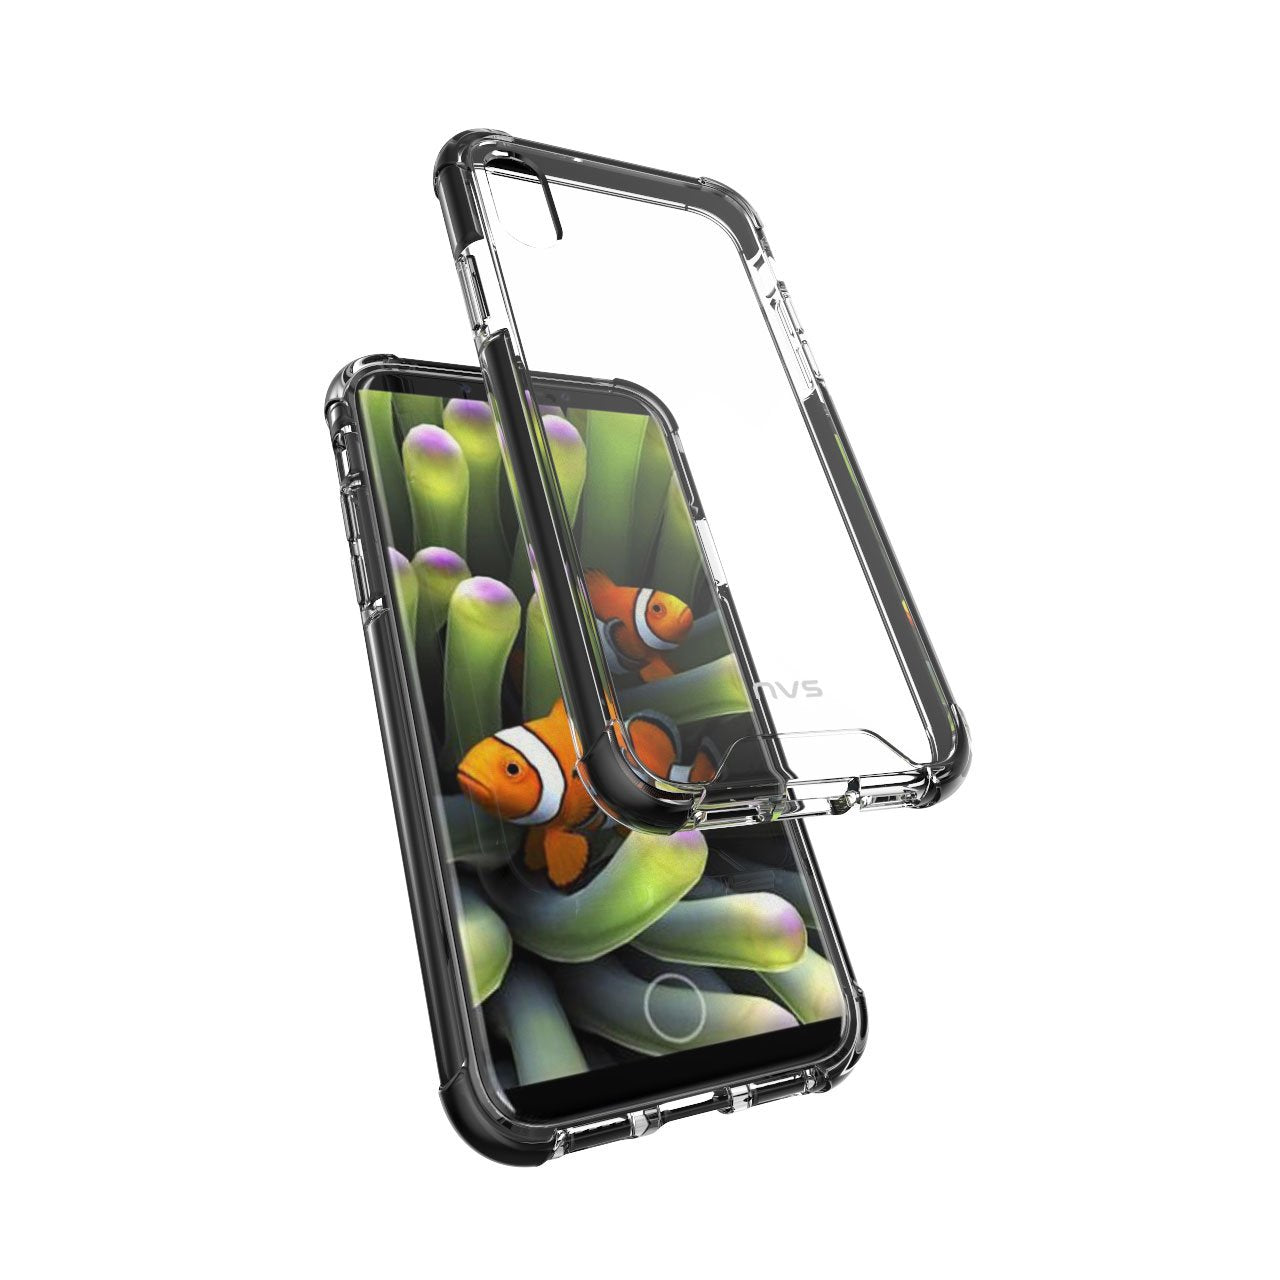 NVS OptiShield Case for iPhone X/Xs